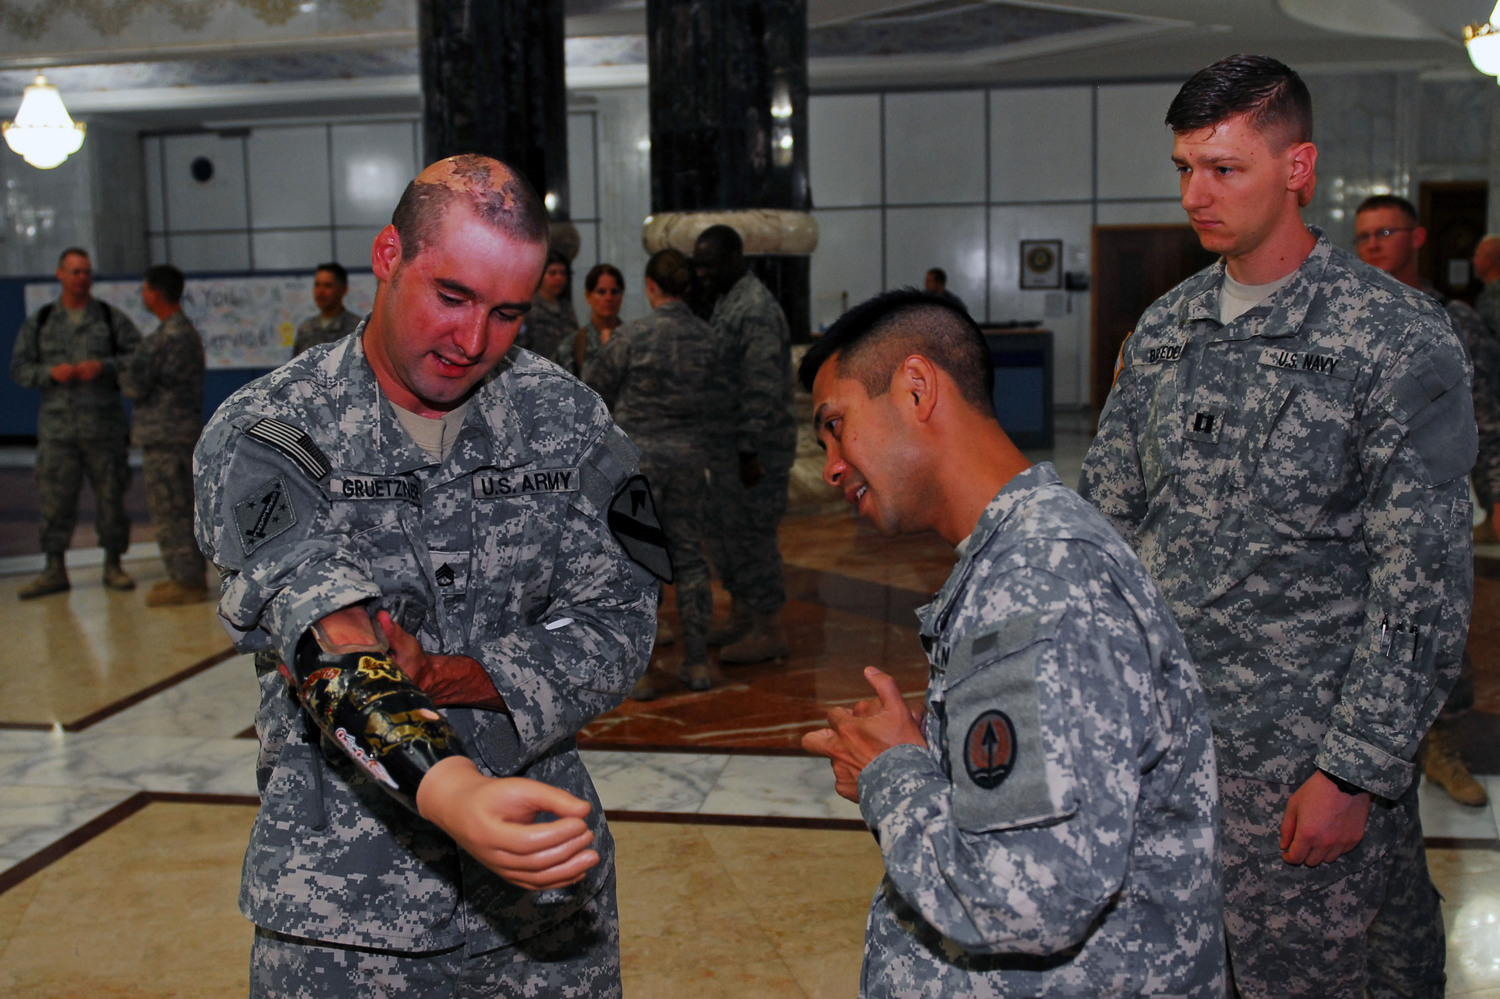 Retired Staff Sgt. Bradley K. Gruetzner explains his prosthetic arm to servicemembers at Al Faw Palace, Camp Victory, Iraq, June 21.